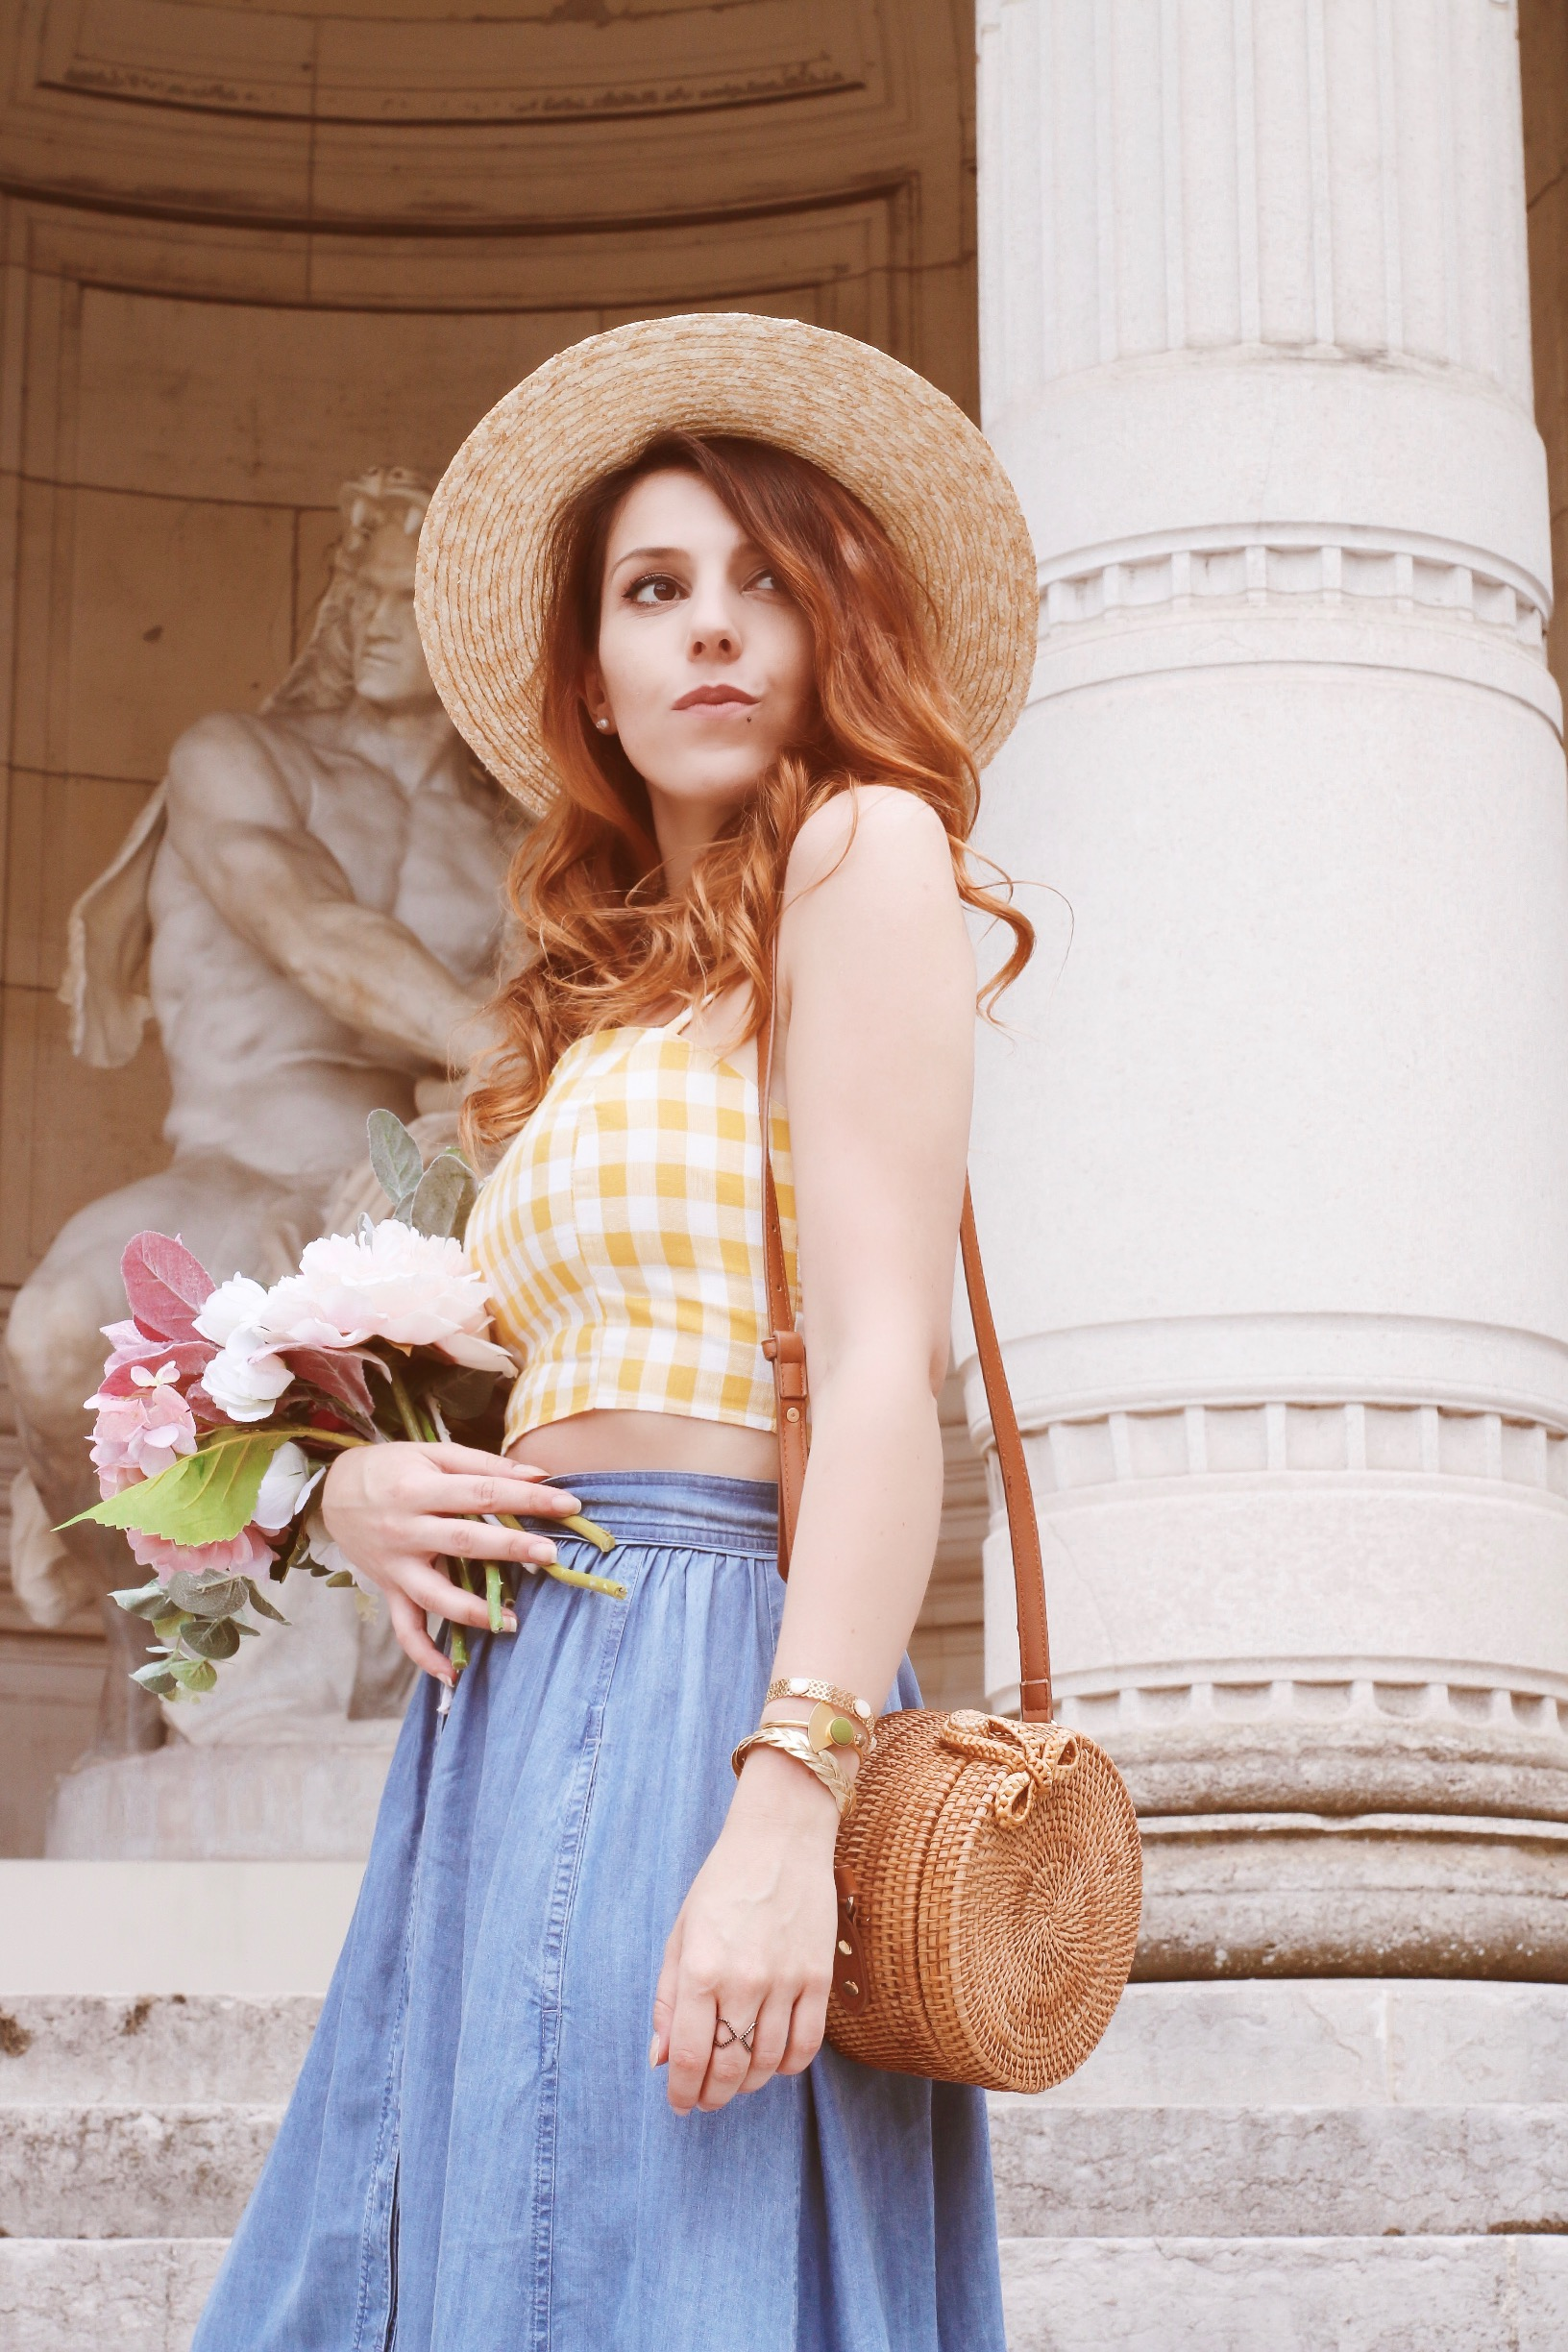 Tenue-retro-parisienne-jupe-denim-paul-and-joe-top-bershka-sac-rotin-musée-galliera-paris-charlie-sugar-town